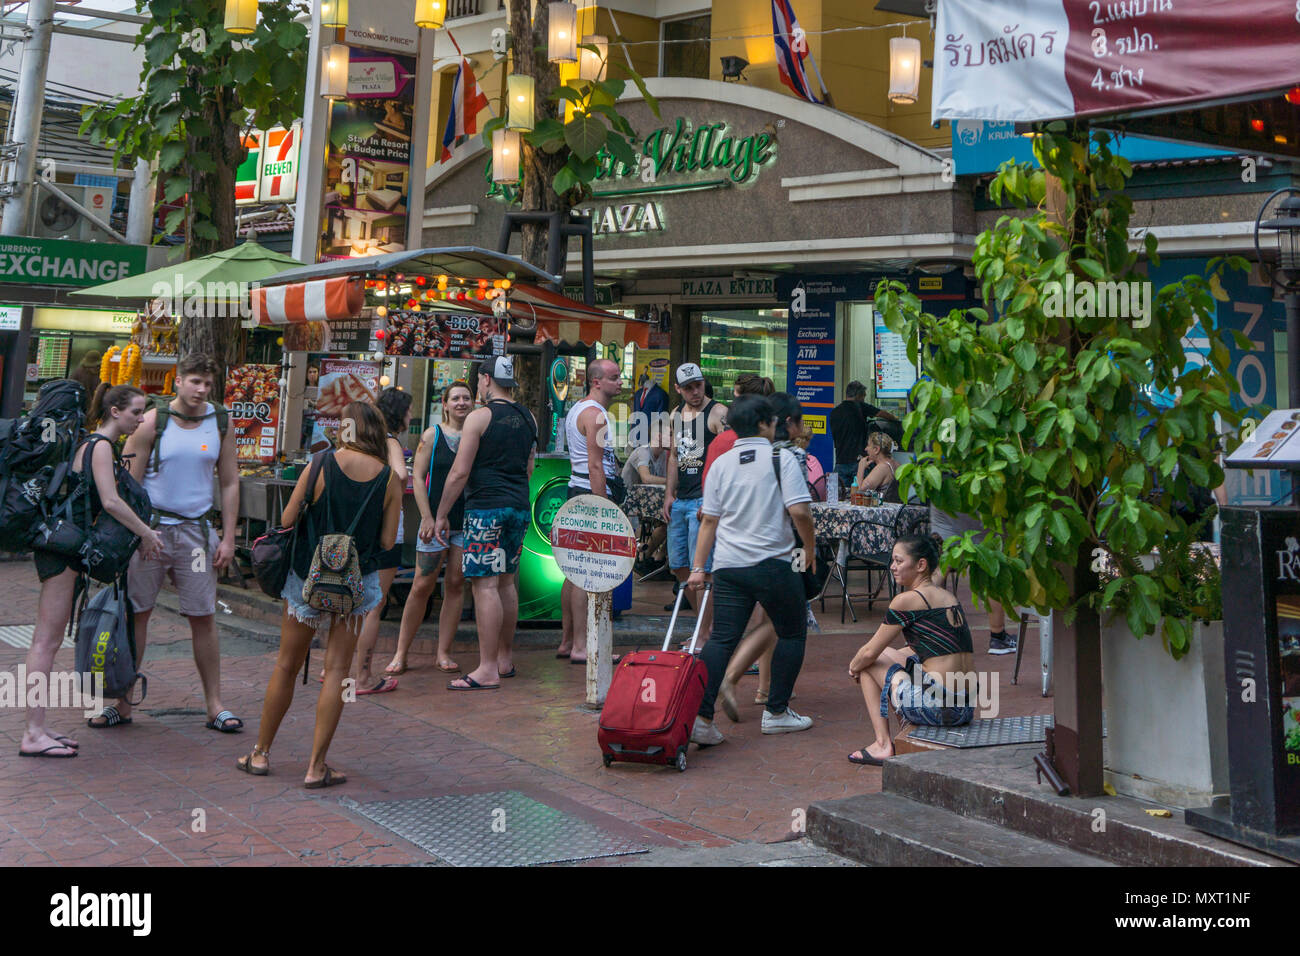 Backpacker, der Khao San Road, Soi Rambuttri, Bangkok, Thailand, Stockbild